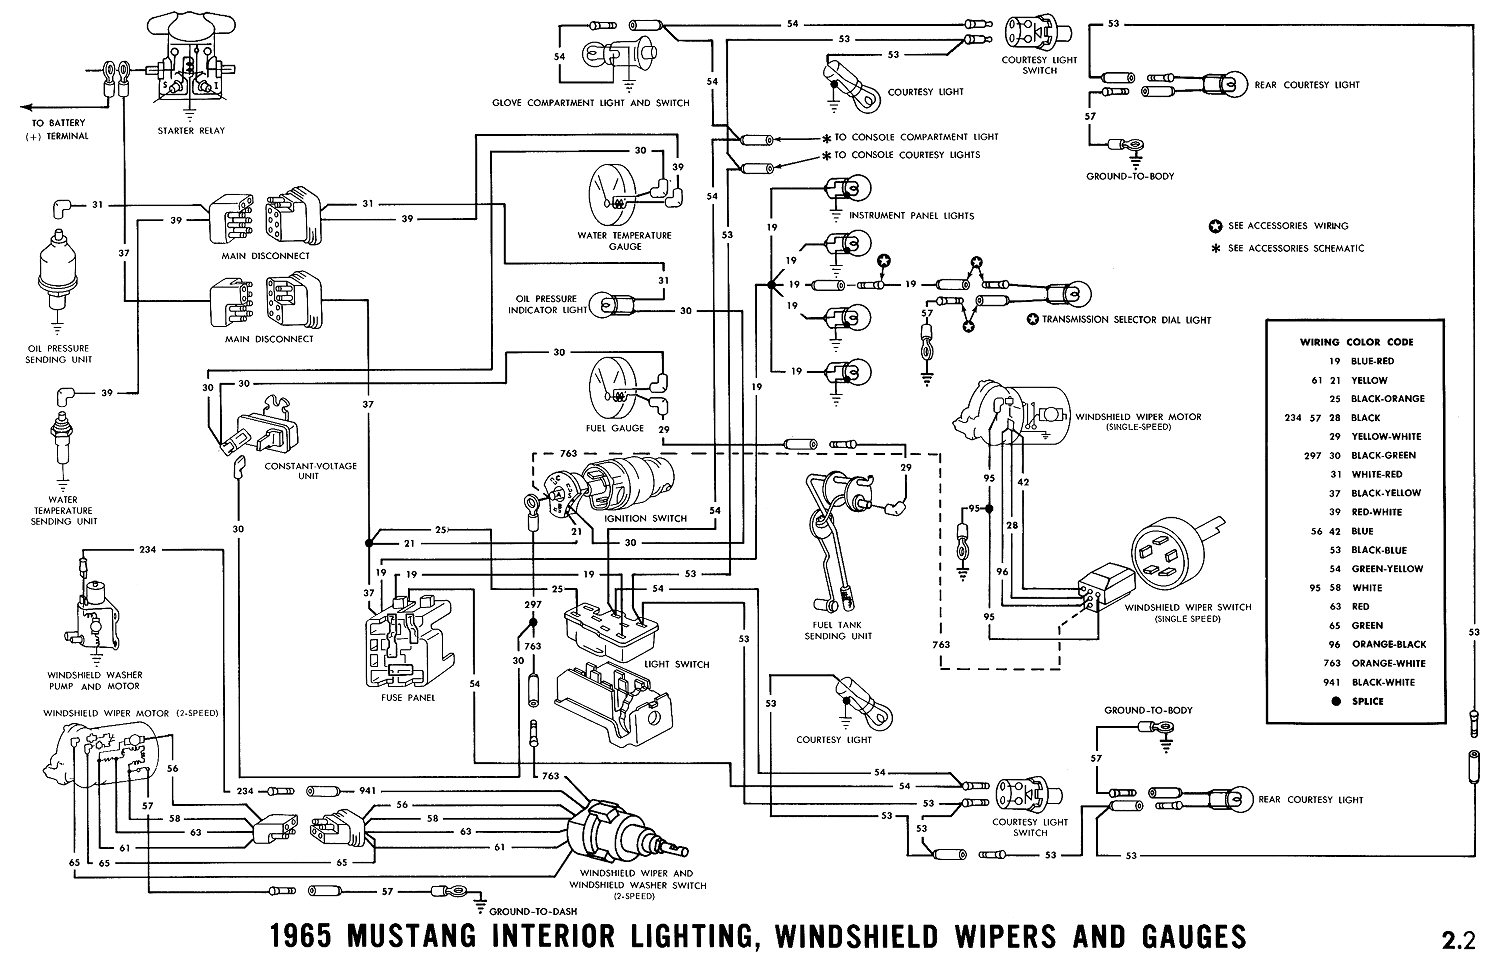 1999 Grand Marquis Fuse Panel Diagram Wiring Library Mercury 90 1965 Mustang Diagrams Average Joe Restoration Cougar Location